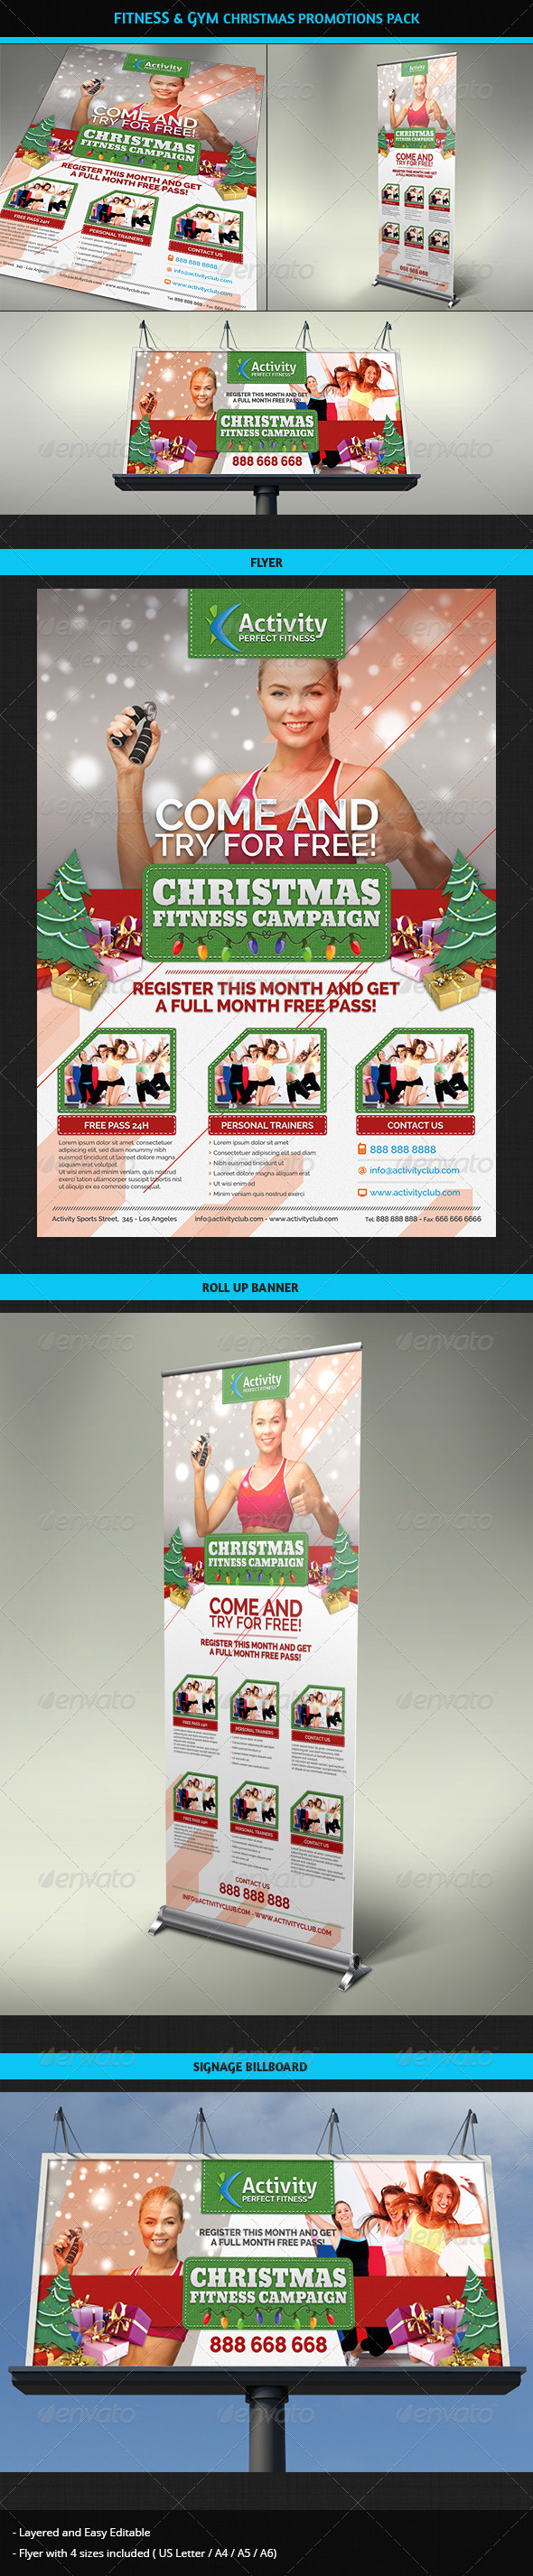 GraphicRiver Fitness & Gym Christmas Promotions Pack 6327054